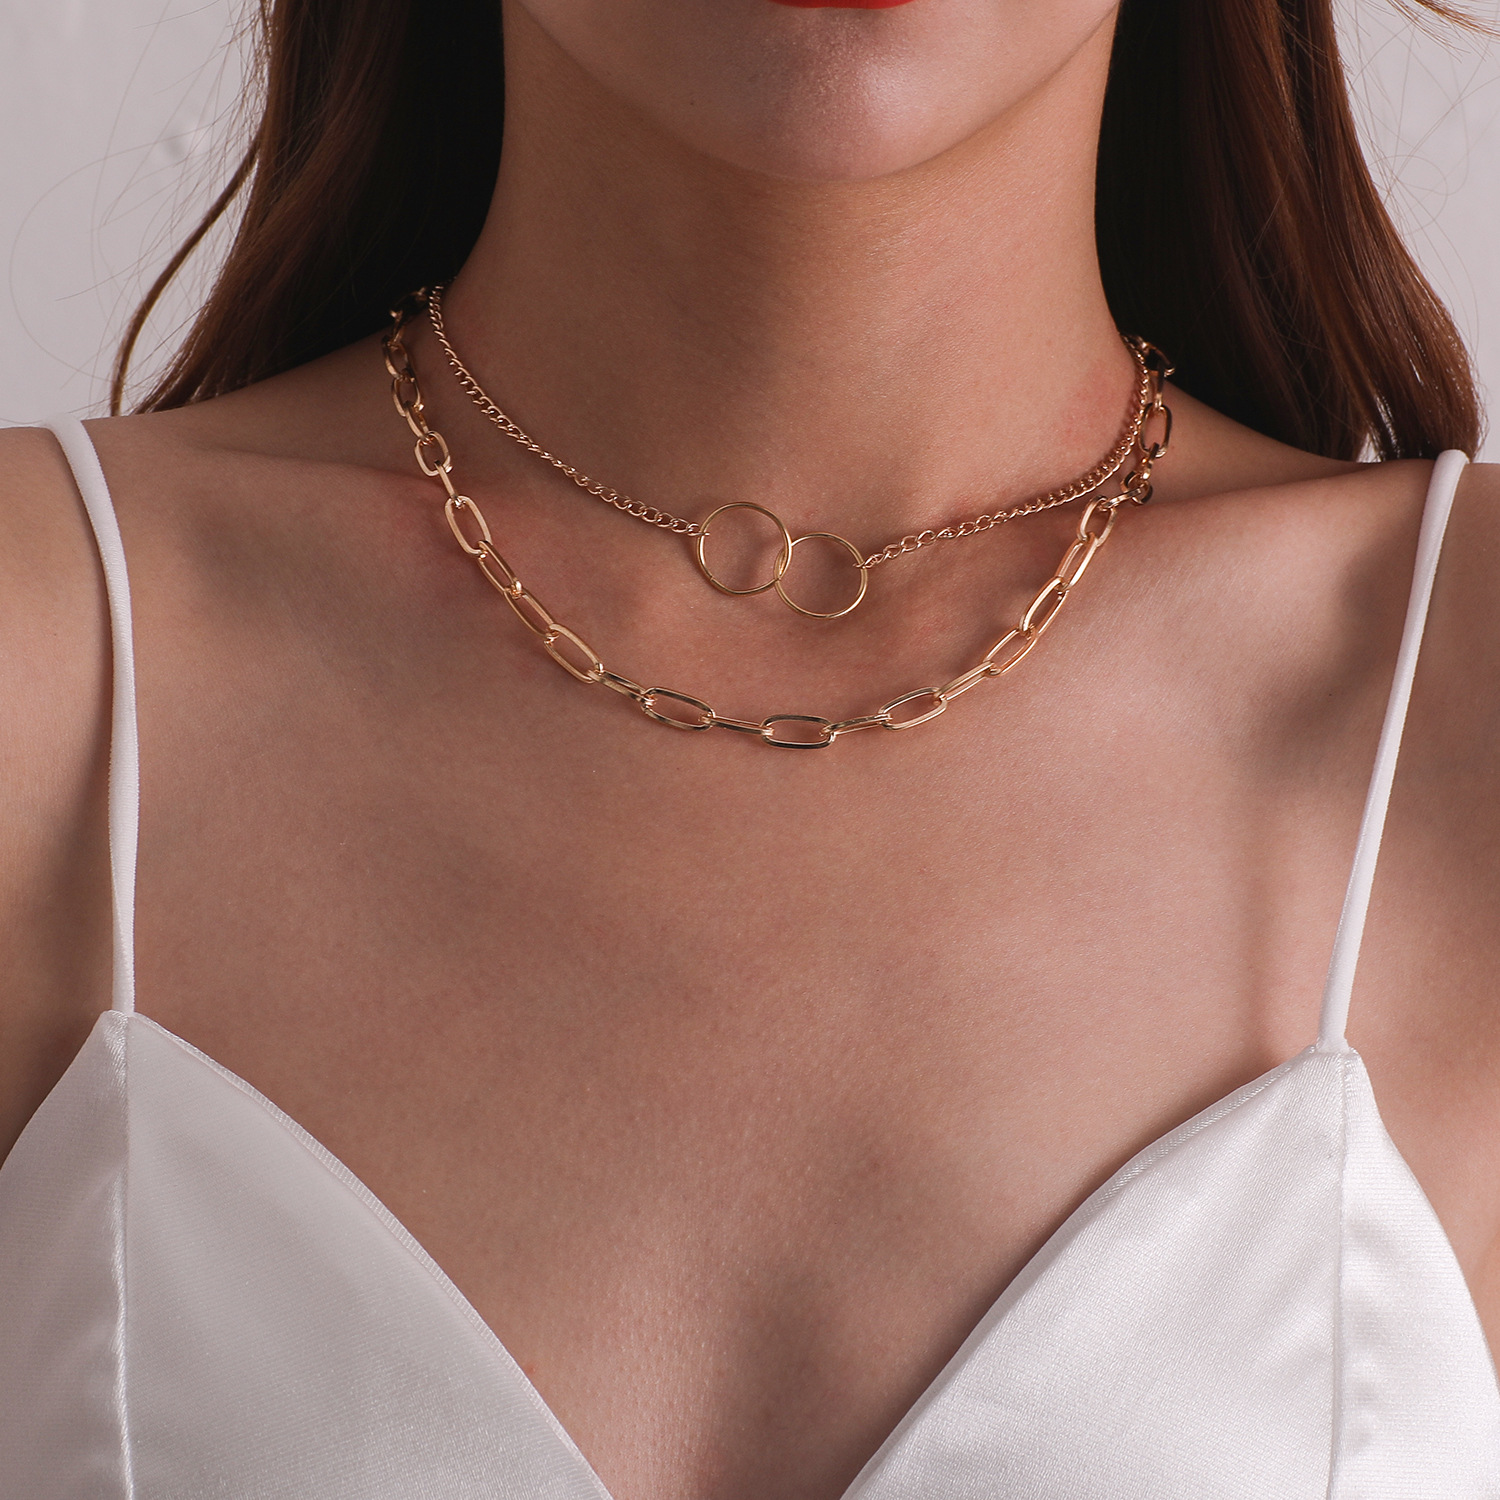 Alloy Square Thick Chain Circles Pendant Necklaces for Women Gold Color Fashion Jewelry Short Necklace Female Clavicle Chains